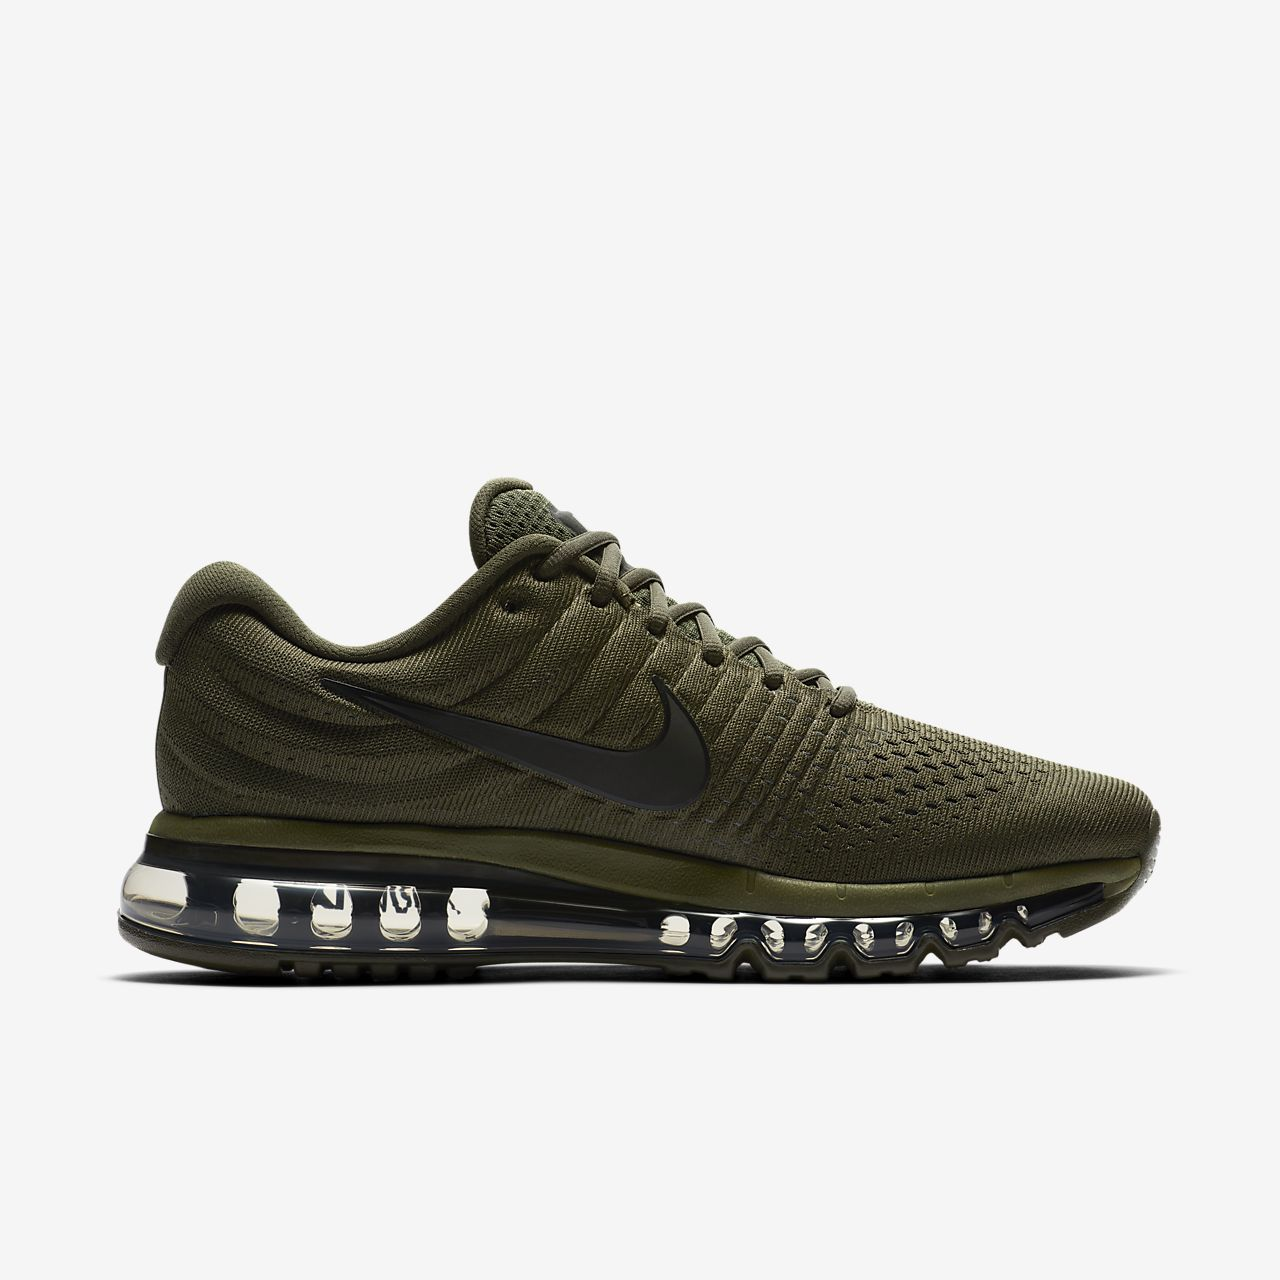 new styles c2362 bab53 ... Chaussure Nike Air Max 2017 SE pour Homme